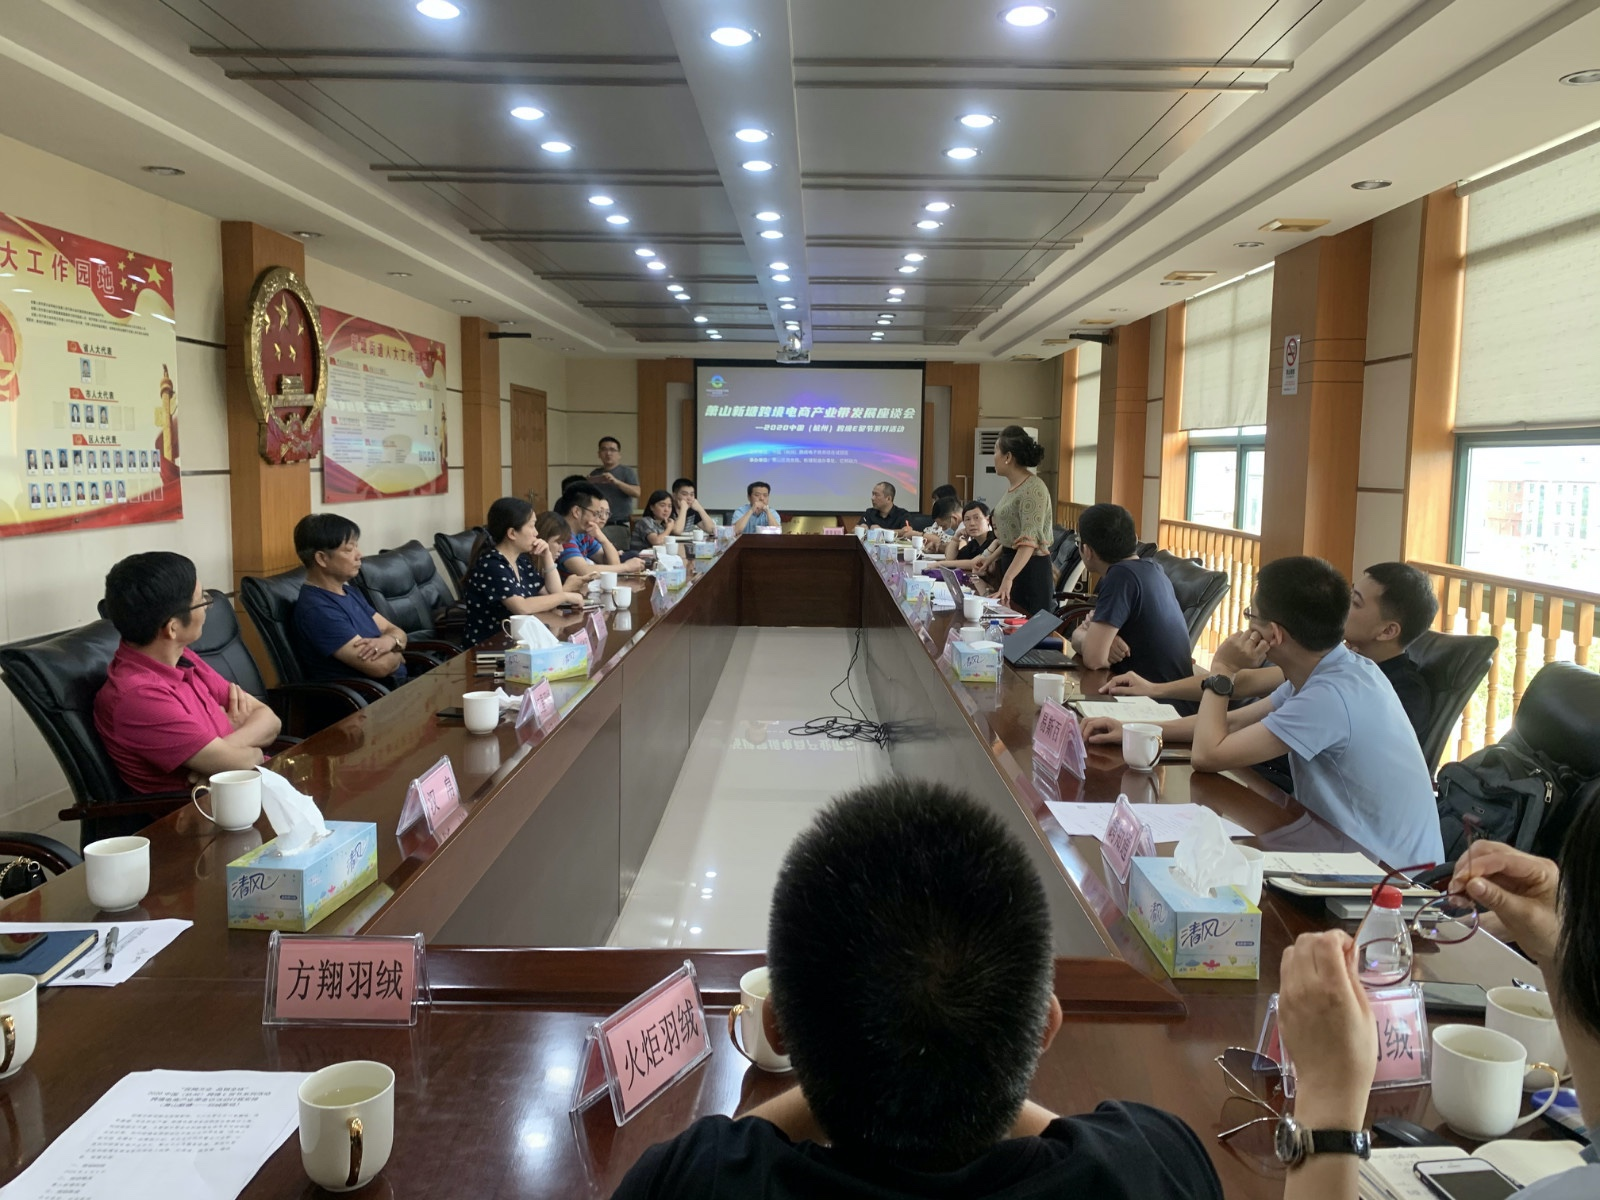 New Way for Cross-border E-commerce Transformation of Eiderdown Home Textile Enterprises in Xintang, Xiaoshan